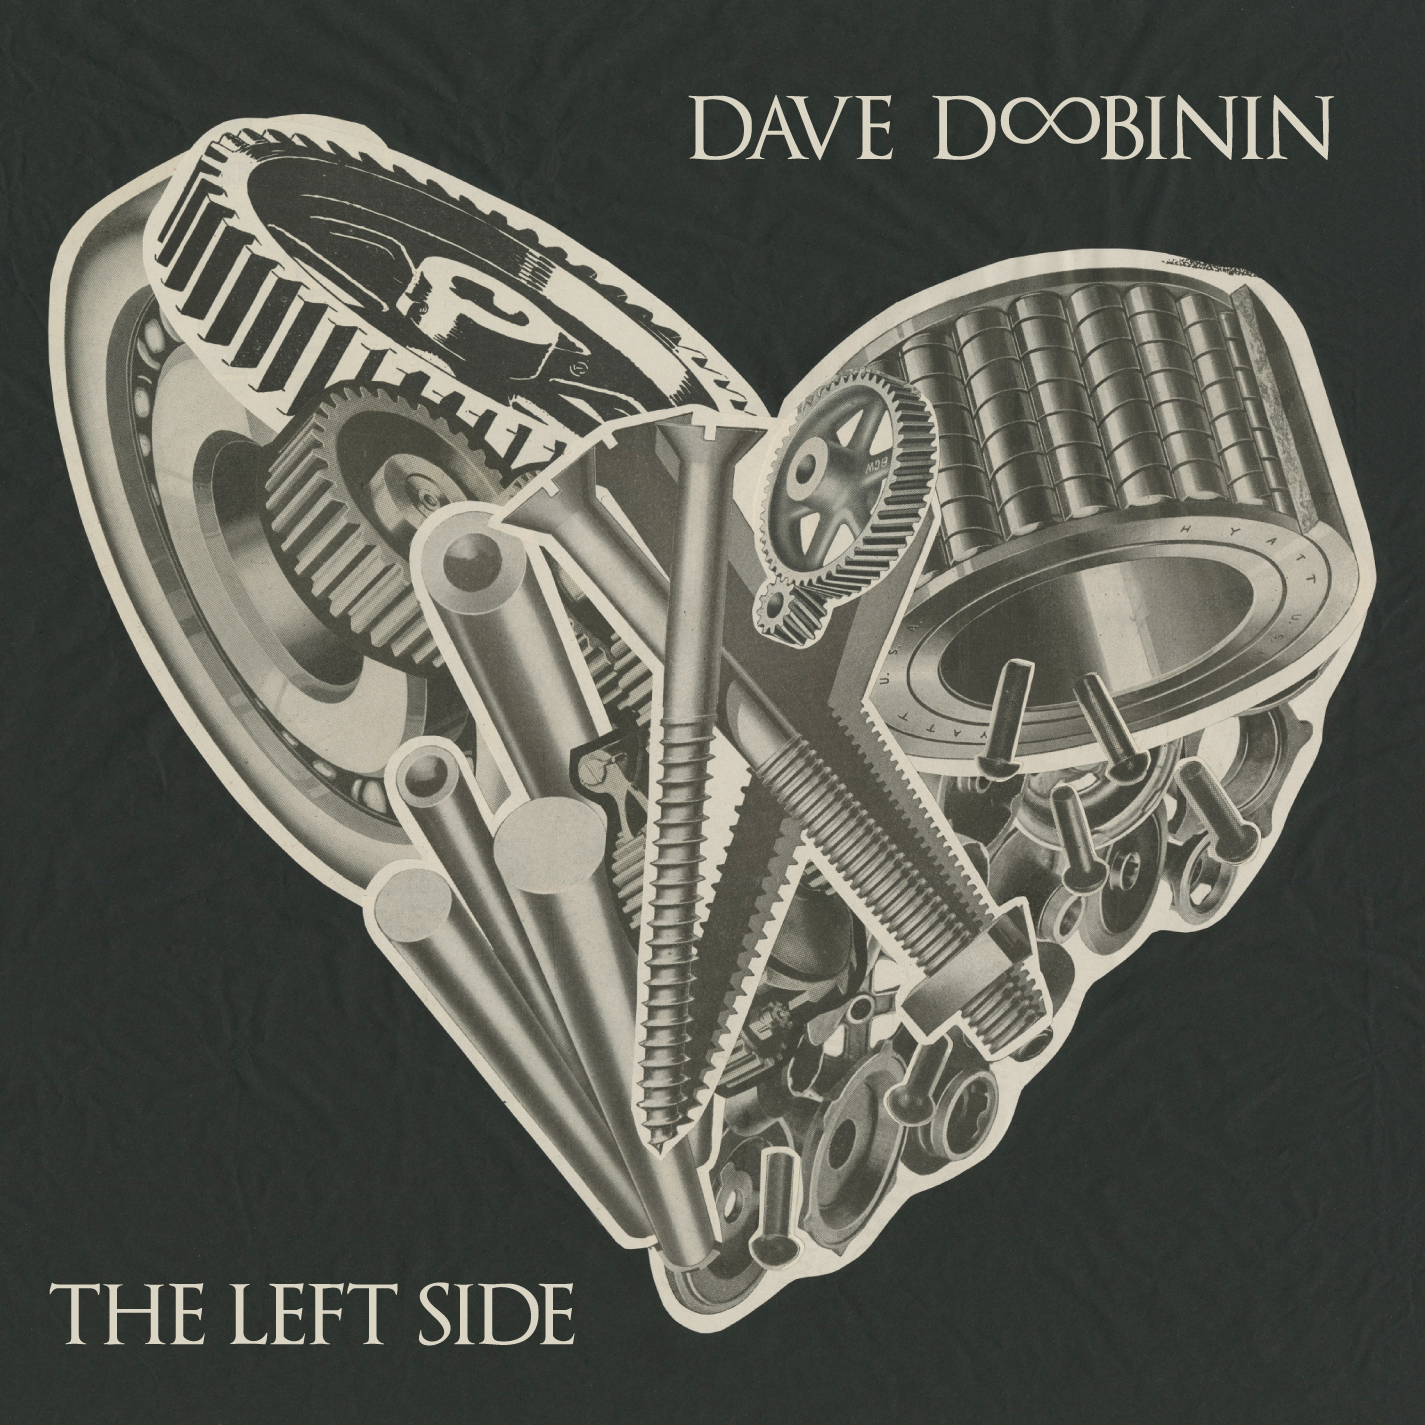 Dave Doobinin, The Left Side, 2015.  Produced, Mixed, Drums, Percussion, Synths whole album.    Purchase here:   https://itunes.apple.com/us/album/johnny/id947547130?i=947547141&ign-mpt=uo%3D4